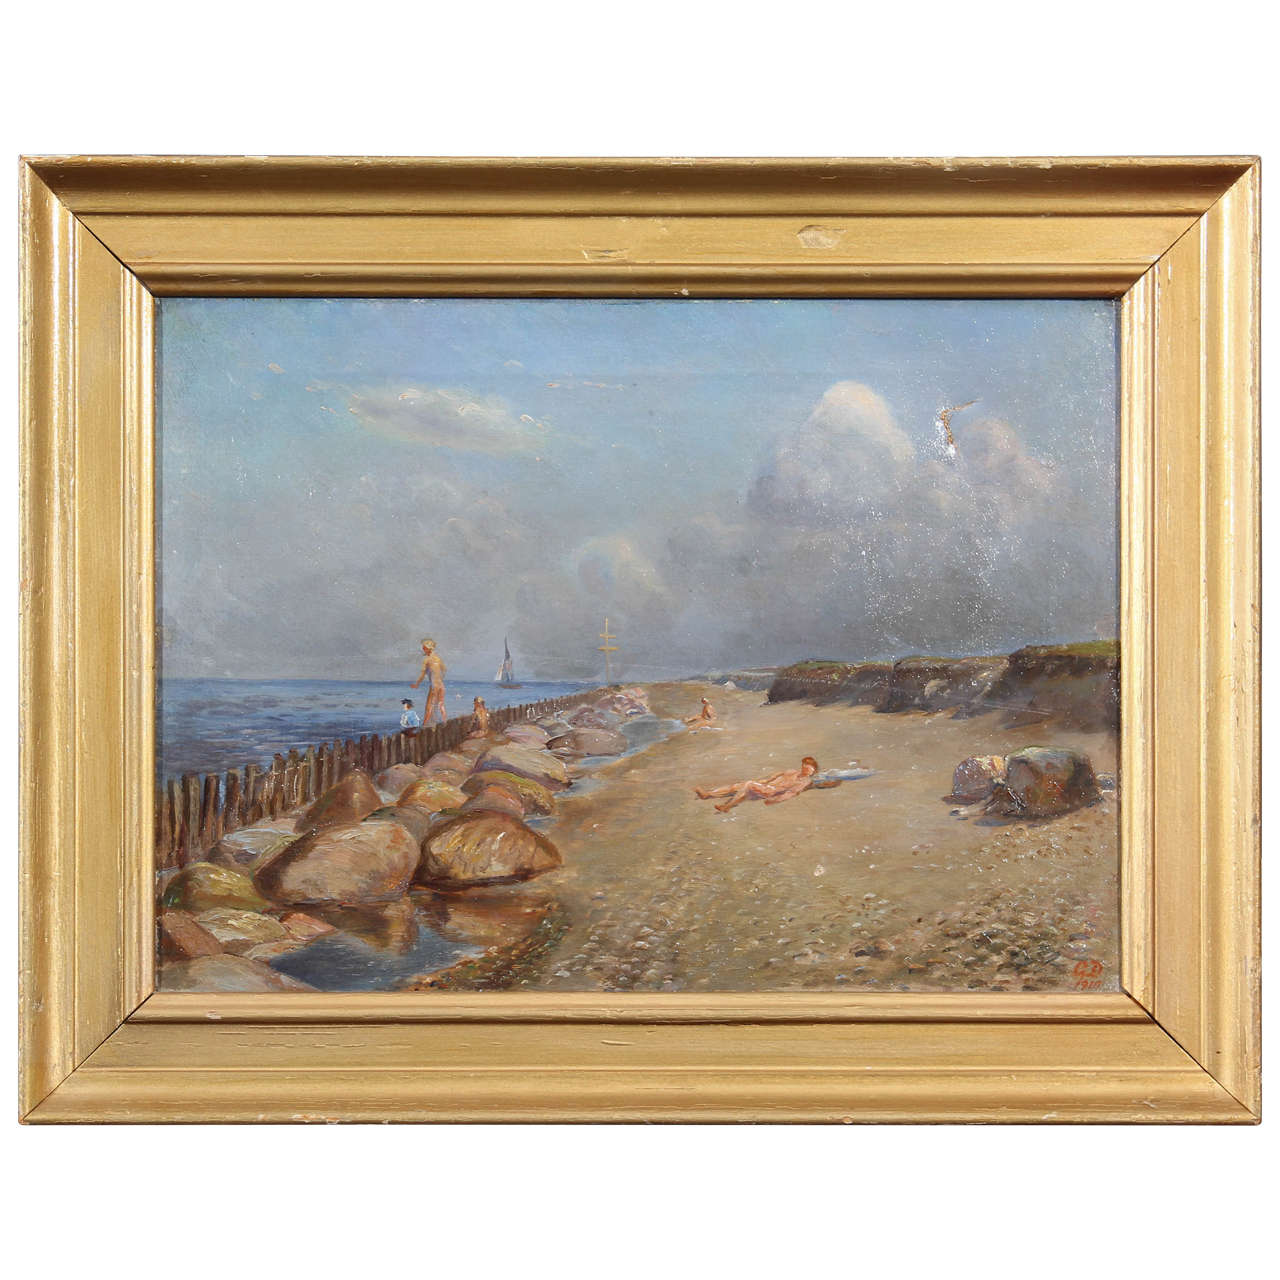 A nude beach painting, circa 1910 by a Danish artist